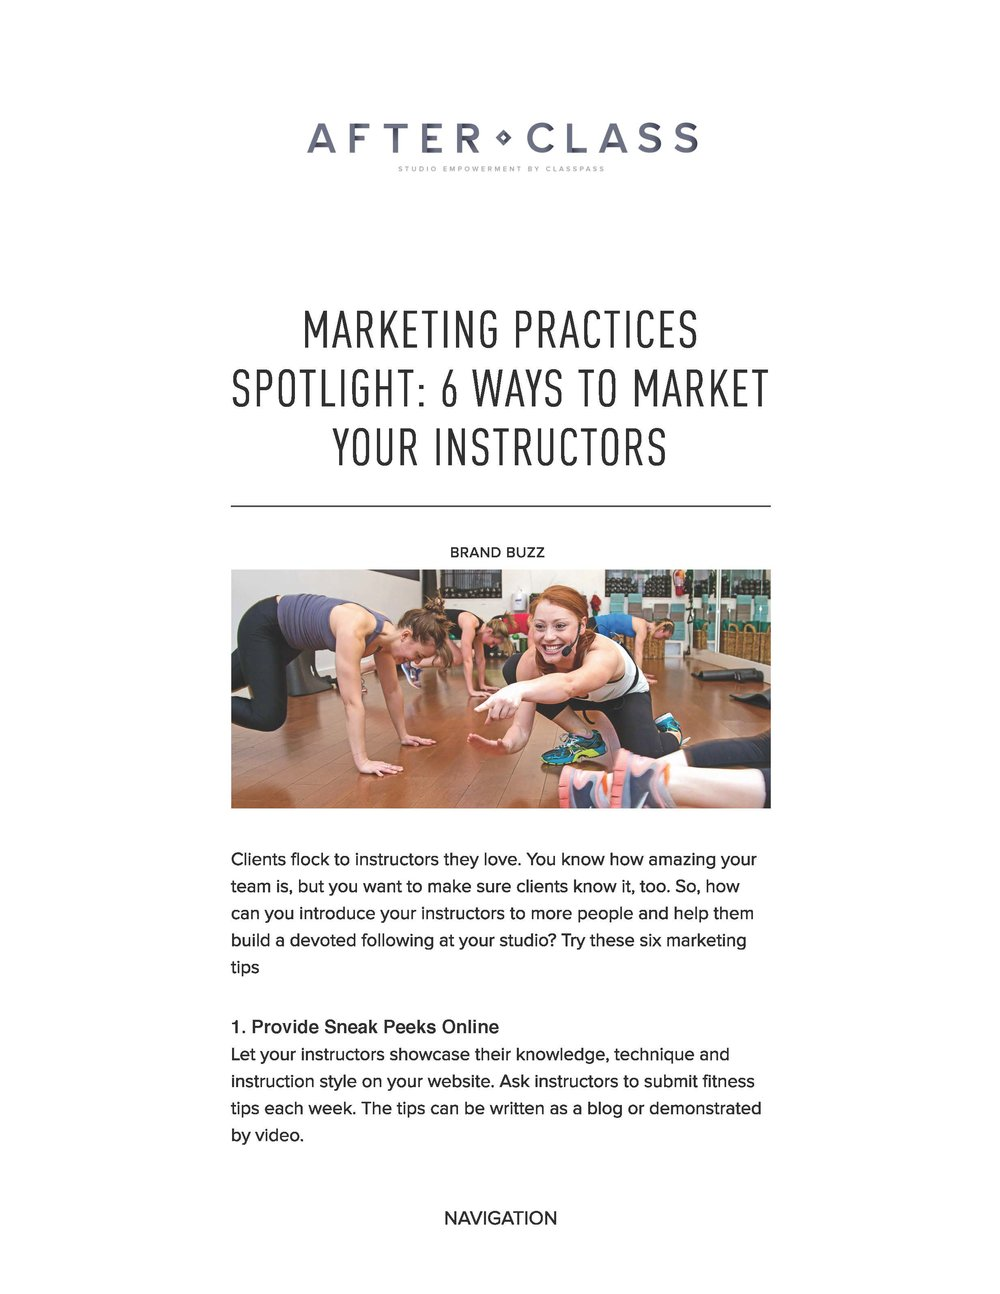 marketing practices spotlight- 6 ways to market your instructors copy_Page_1.jpg